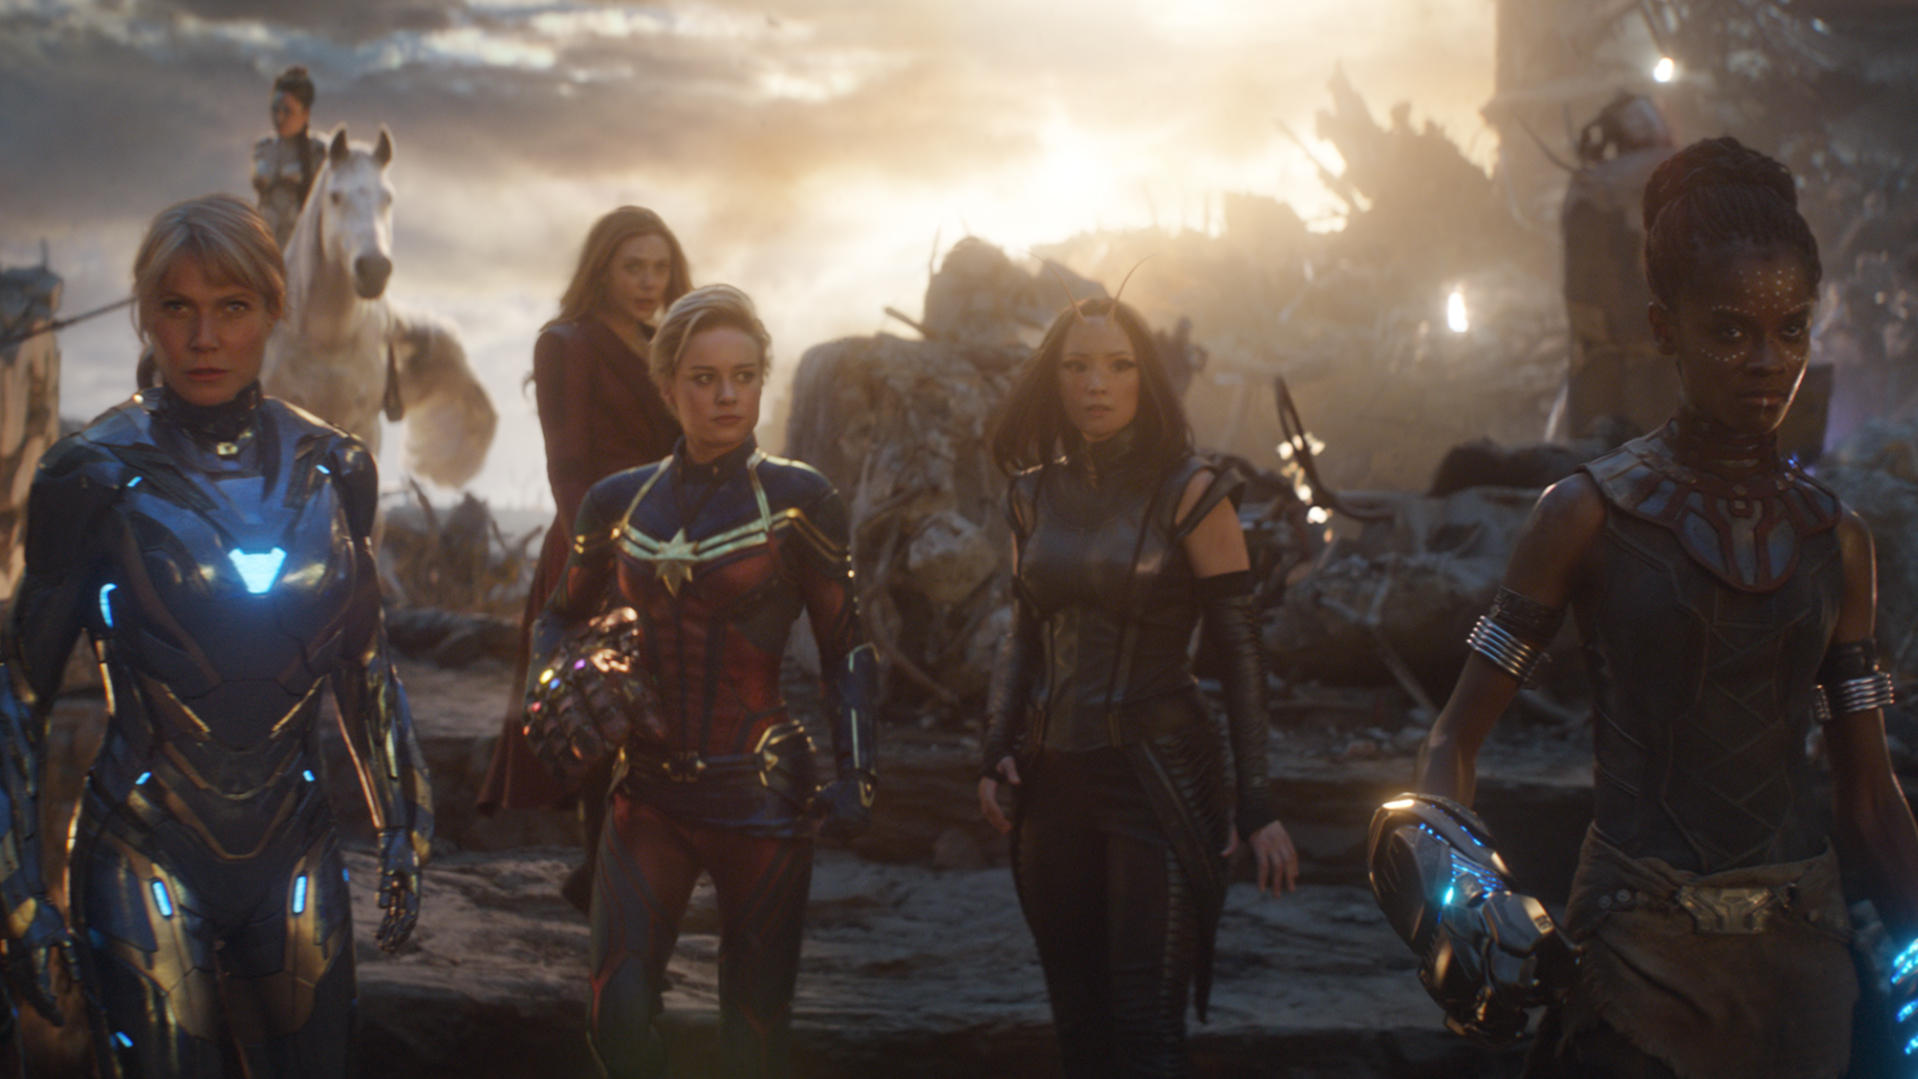 Avengers,' But Make It Without Women, Or Men Hugging, Or